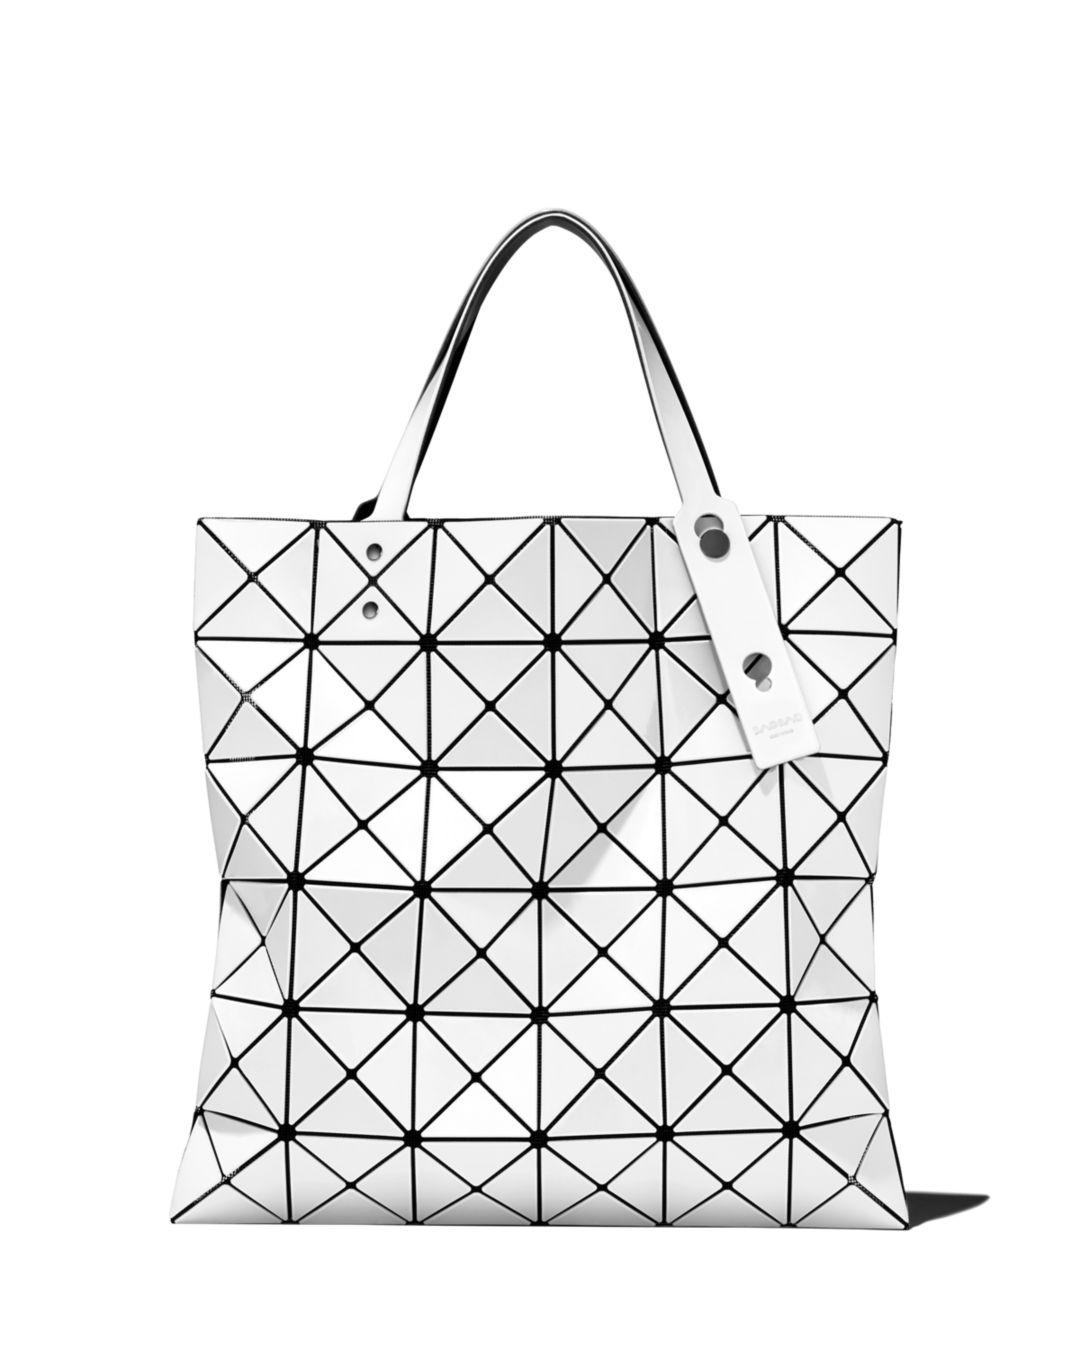 Lyst - Bao Bao Issey Miyake Lucent Tote in White e25ee16459523